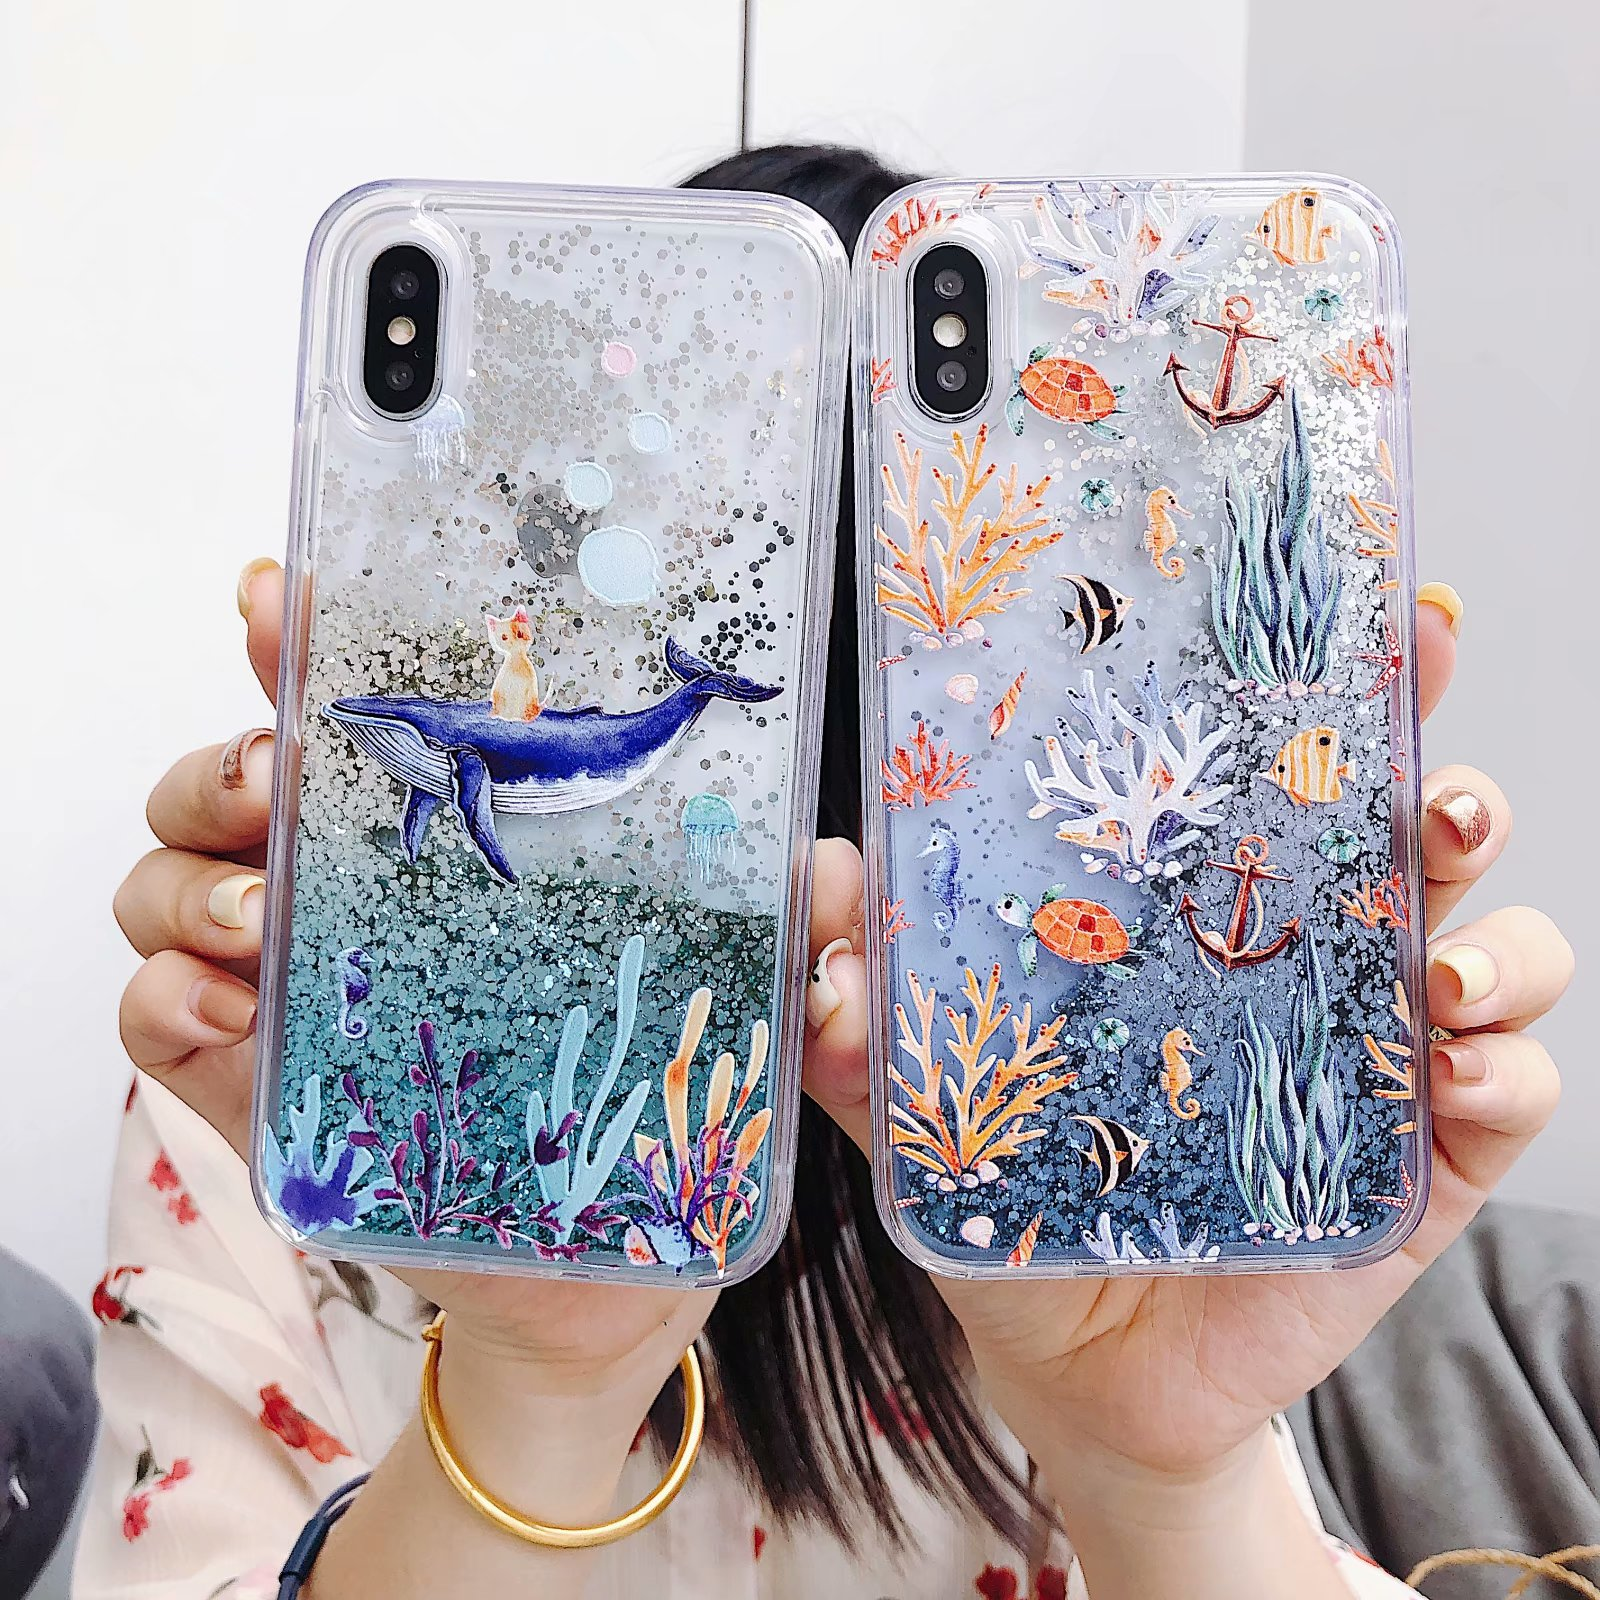 buy online 3423b 96879 US $2.69 10% OFF|Fundas Coral Dolphins Moving Glitter Love Phone Case For  iPhone X XS MAX XR Dynamic Liquid Bling Cover For iPhone 6 6s 7 8 Plus-in  ...